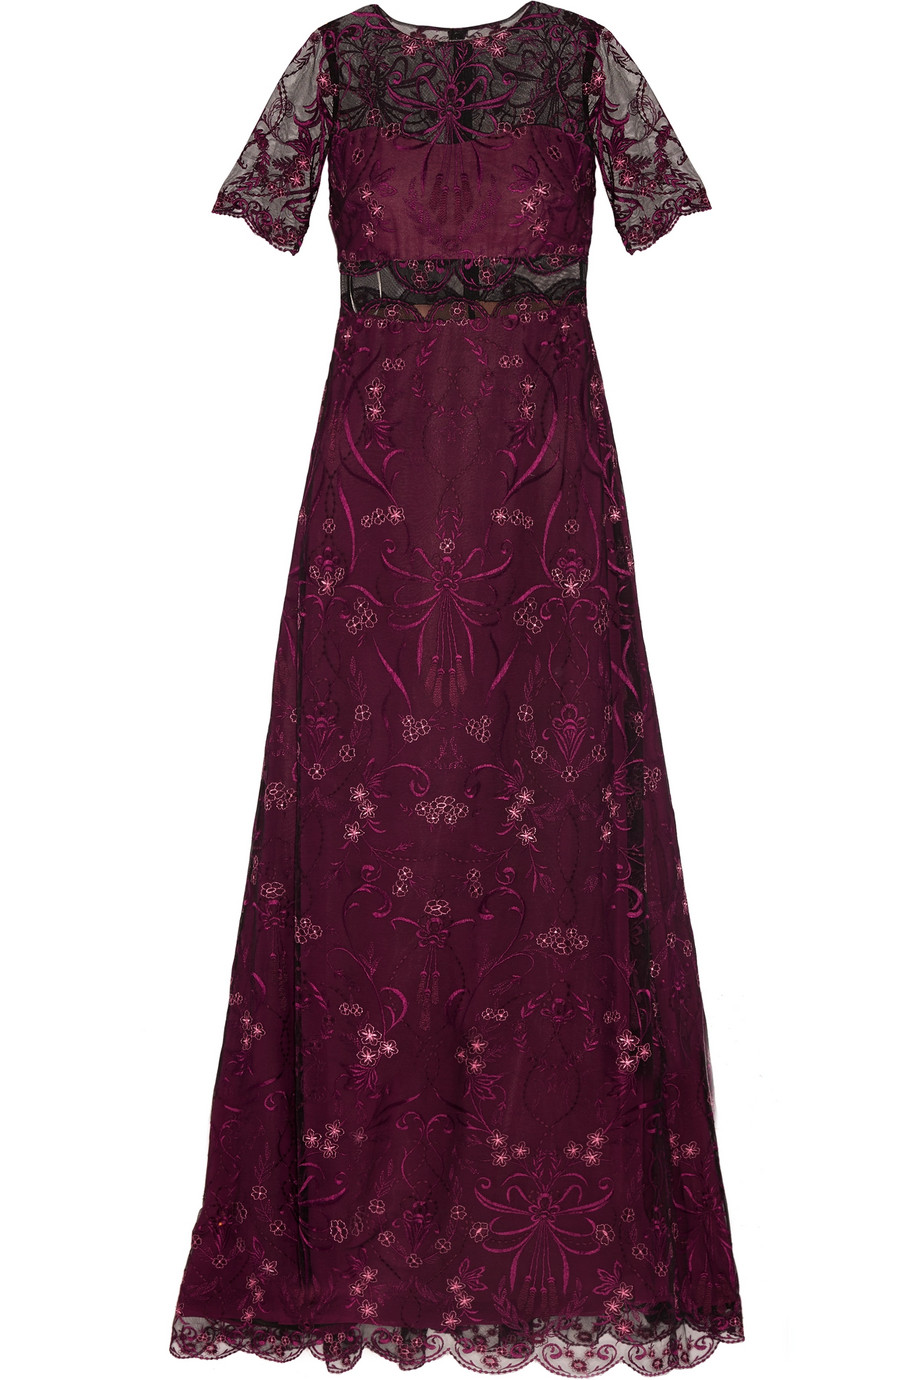 Marchesa Notte Embroidered Tulle and Chiffon Gown, Plum, Women's - Embroidered, Size: 6